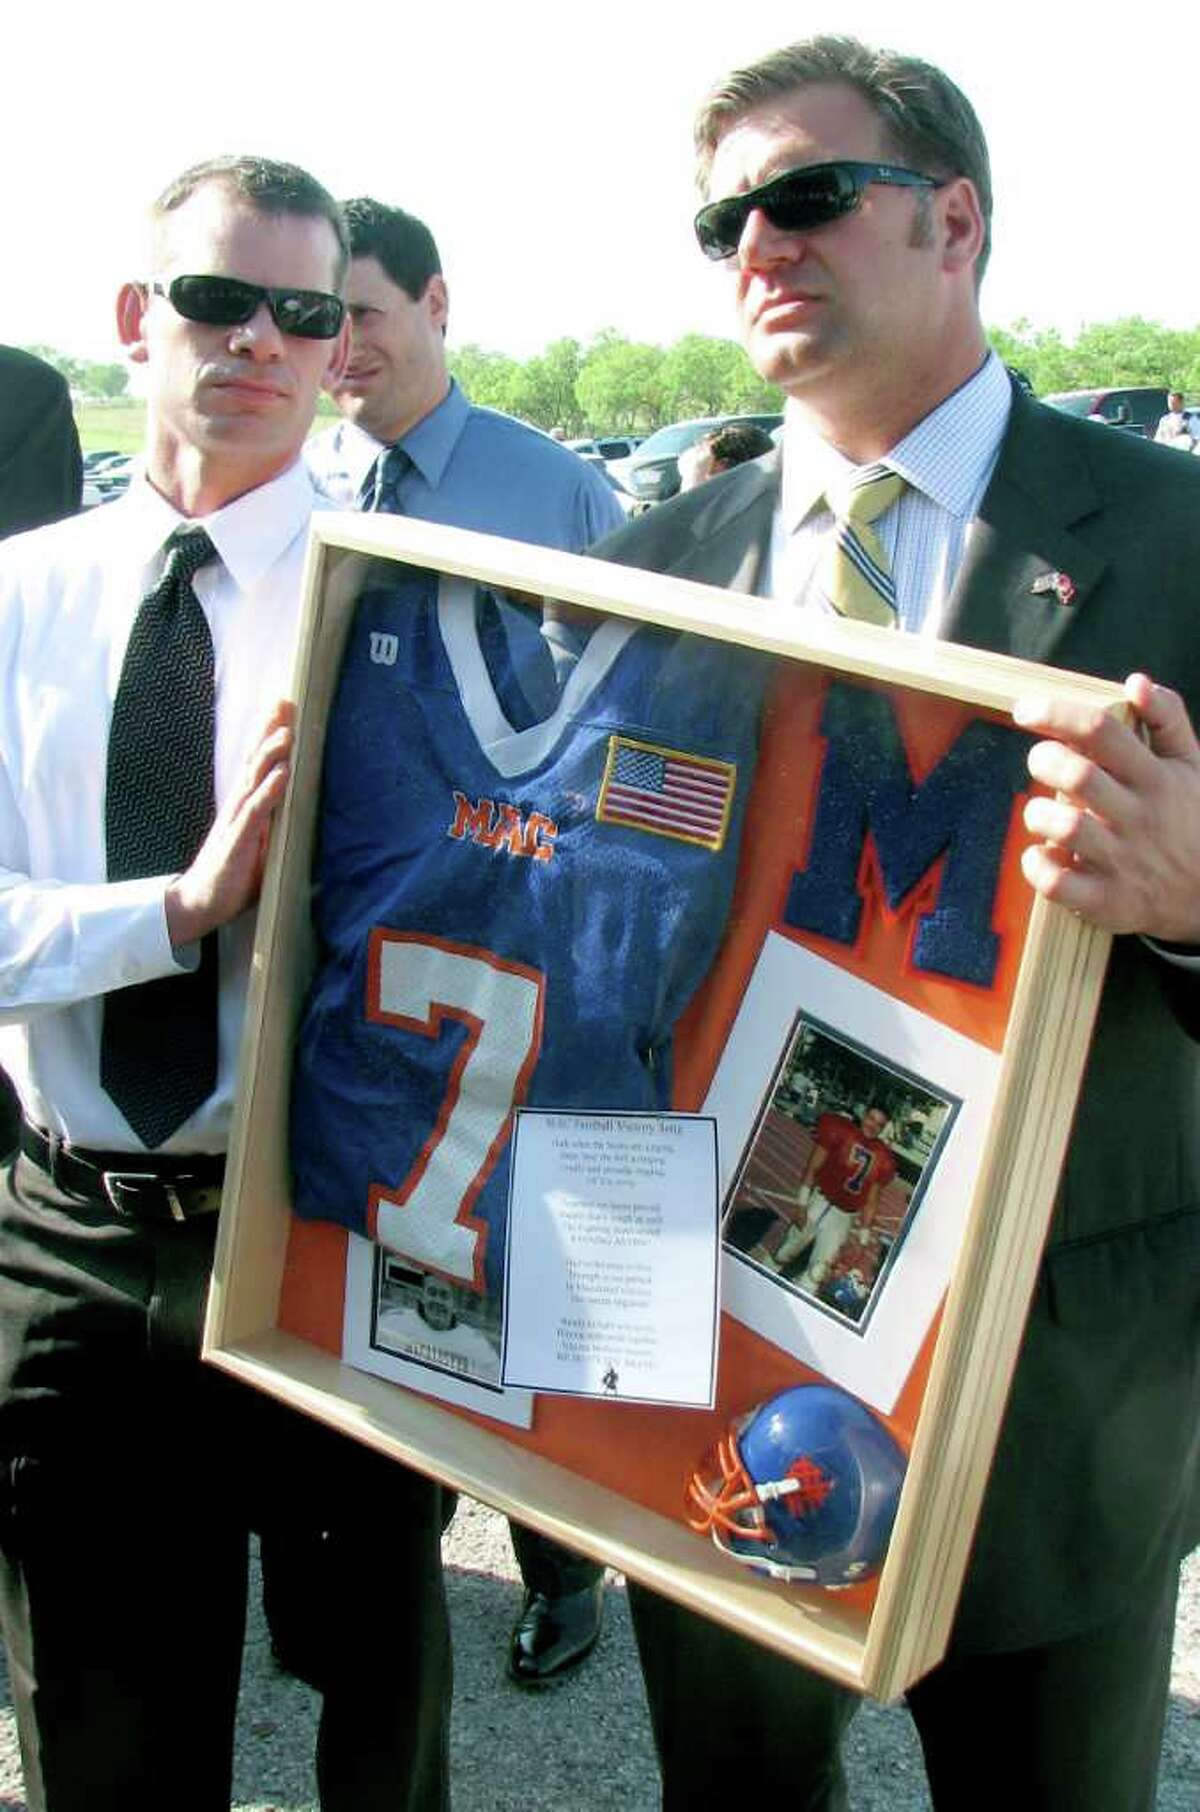 Andrew Borene, right, who played football with 1st Lt. Clovis Ray at Macalester College in St. Paul., Minn., holds a frame containing memorabilia as he waits to enter the Live Oak County Coliseum south of Three Rivers. The memorabilia includes a photo of Ray and a jersey with Ray's number on it.